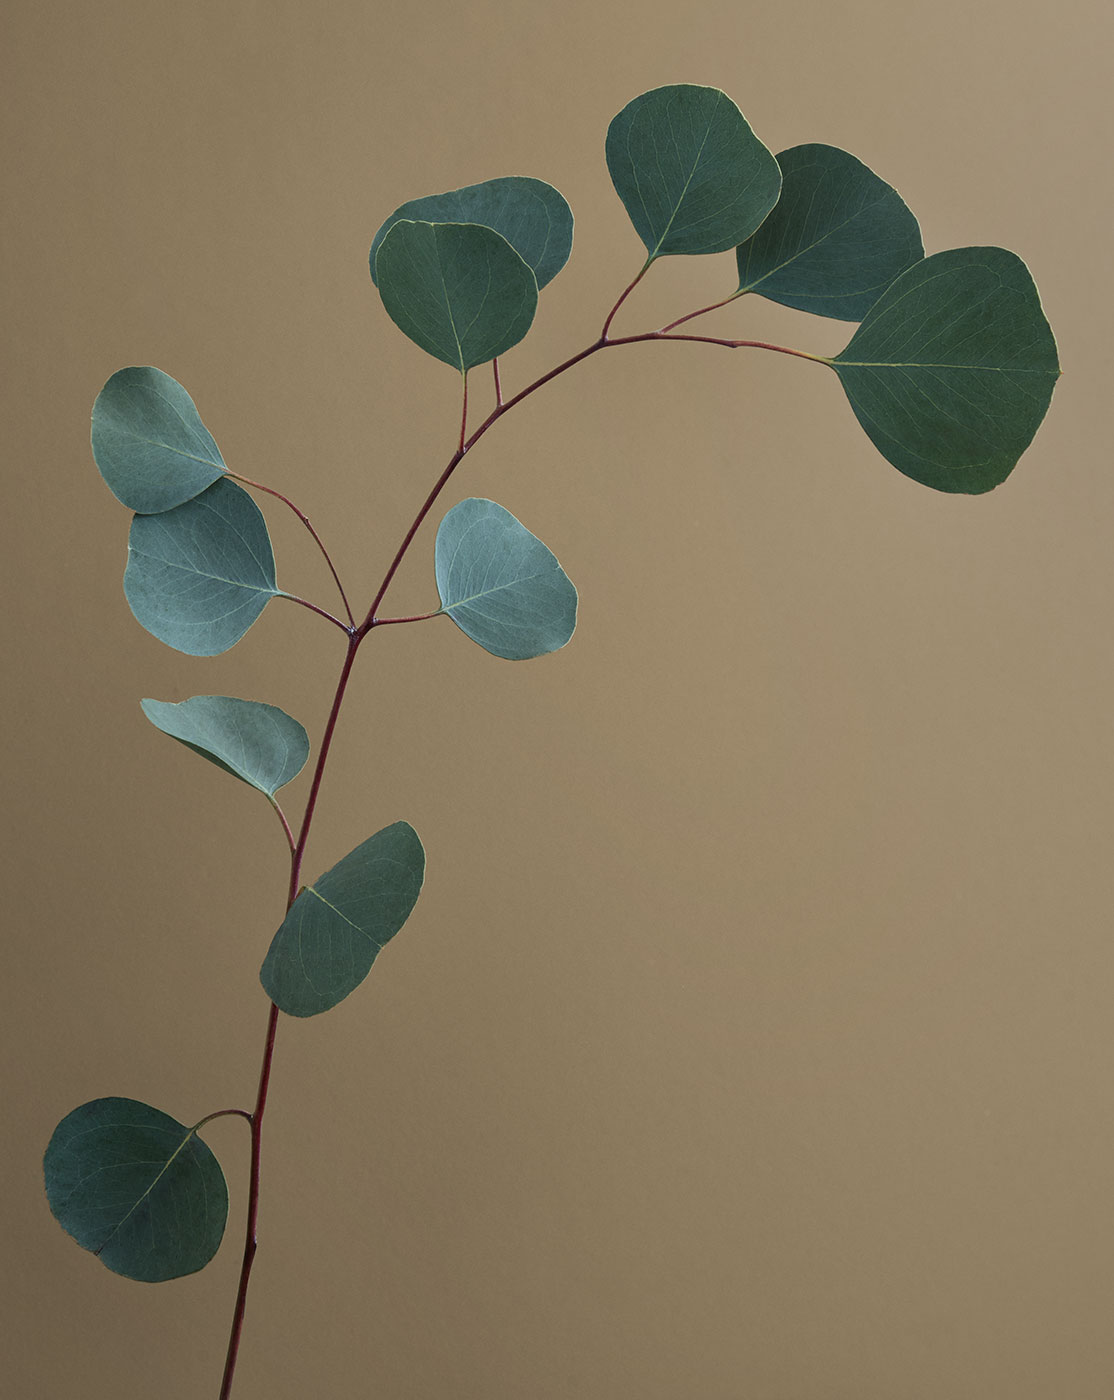 FELT_INGREDIENTS_EUCALYPTUS